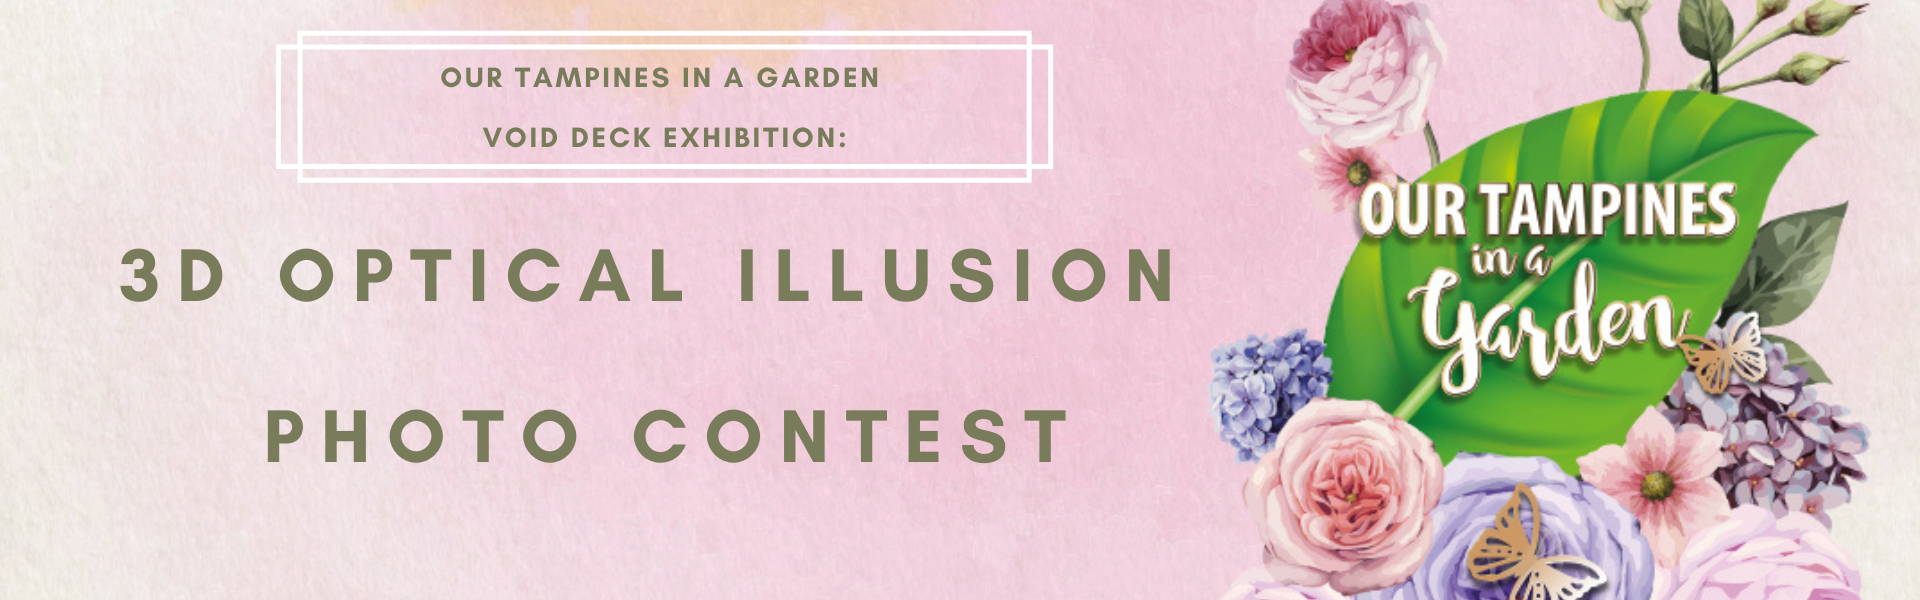 Our Tampines in a Garden: 3D Optical Illusion Photo Contest